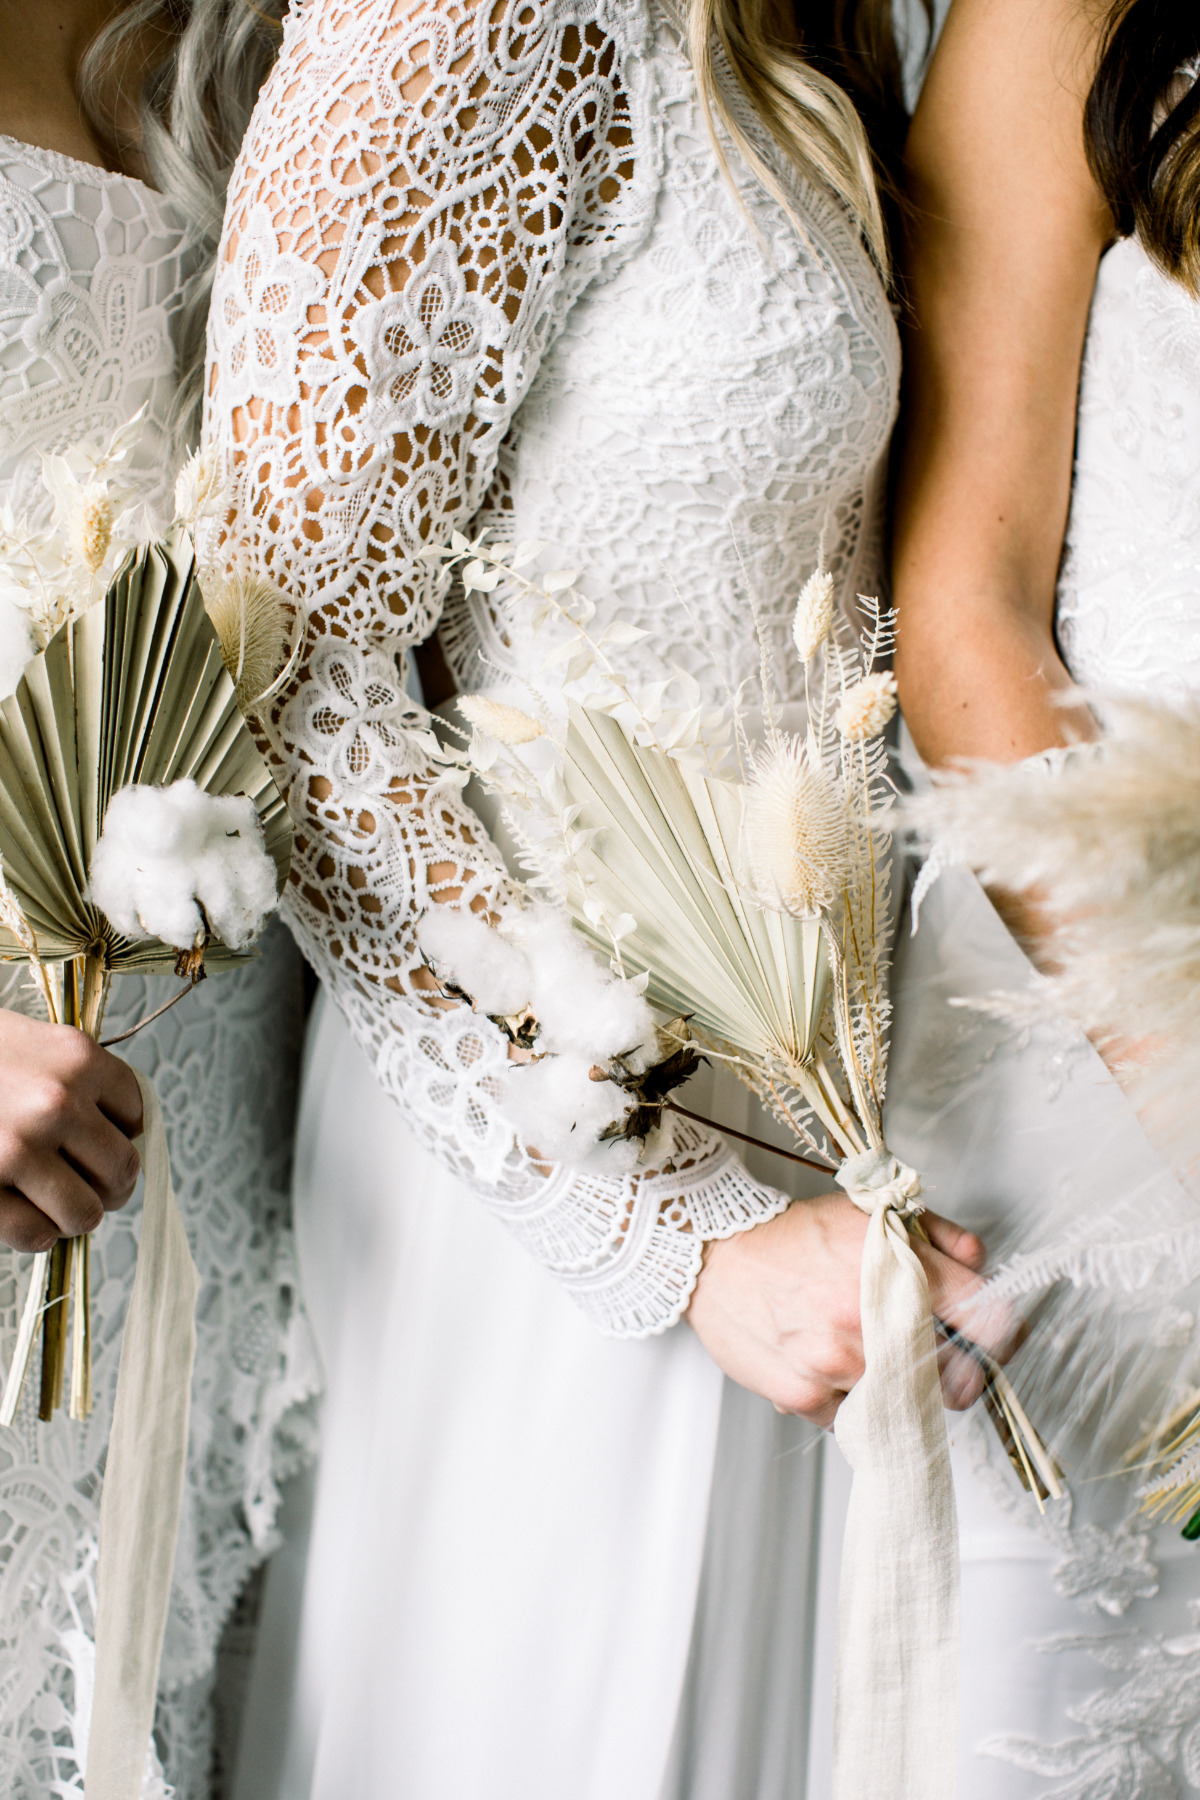 bridesmaids in white dresses holding pampas grass wedding bouquets